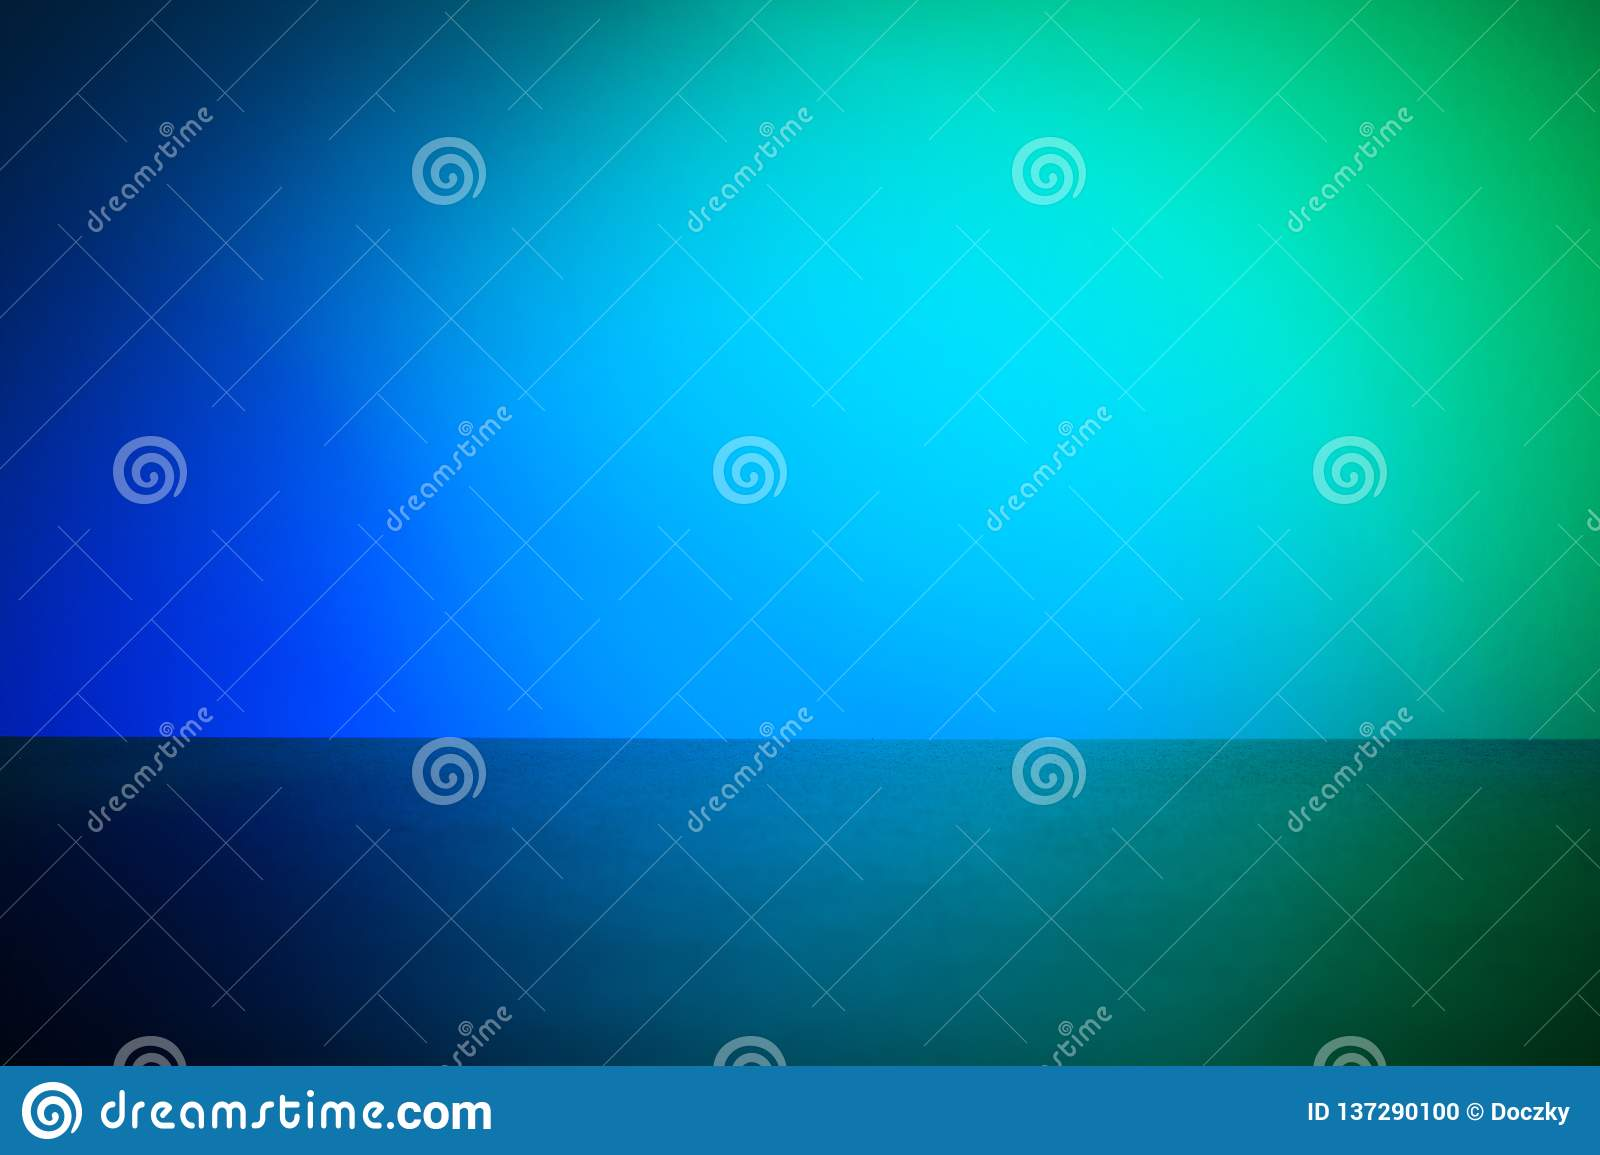 Abstract background ready for product presentation